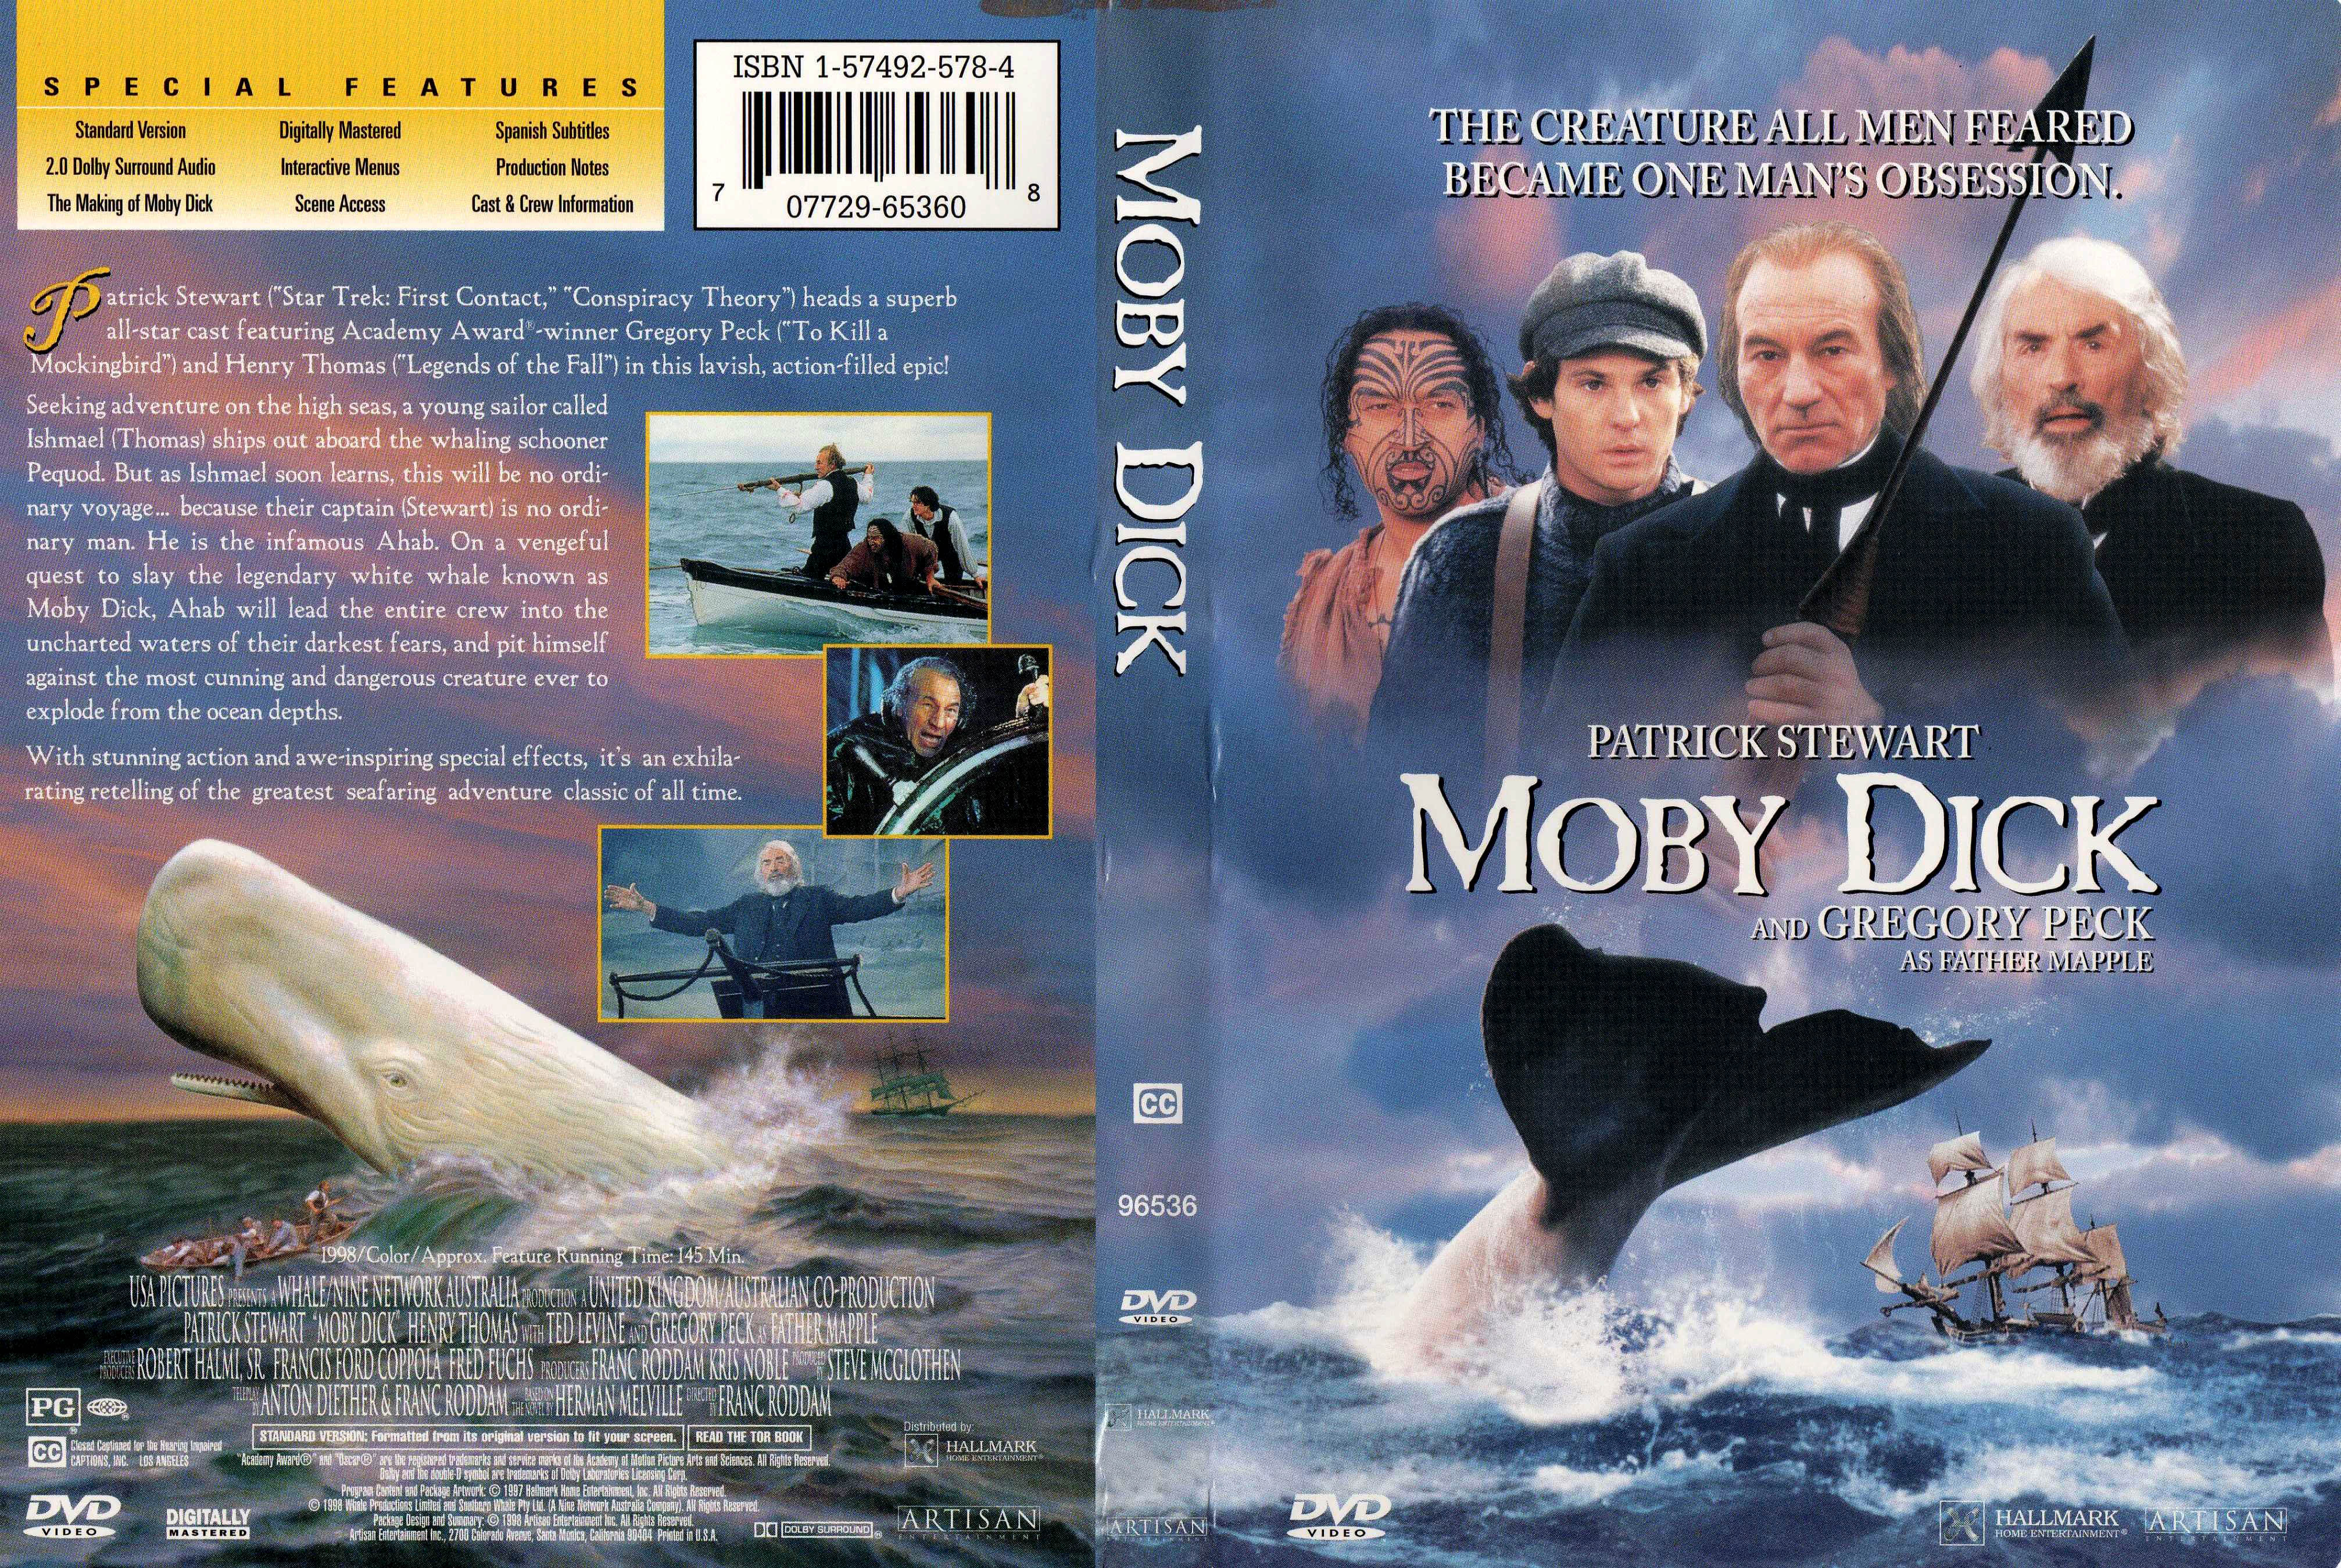 eng 3 moby dick Eng 3 moby dick  topics: moby-dick,  moby dick context herman melville was born in new york city in 1819, the third of eight children born to maria gansevoort melville and allan melville, a prosperous importer of foreign goods when the family business failed at the end of the 1820s, the melvilles relocated to albany in an attempt to revive.